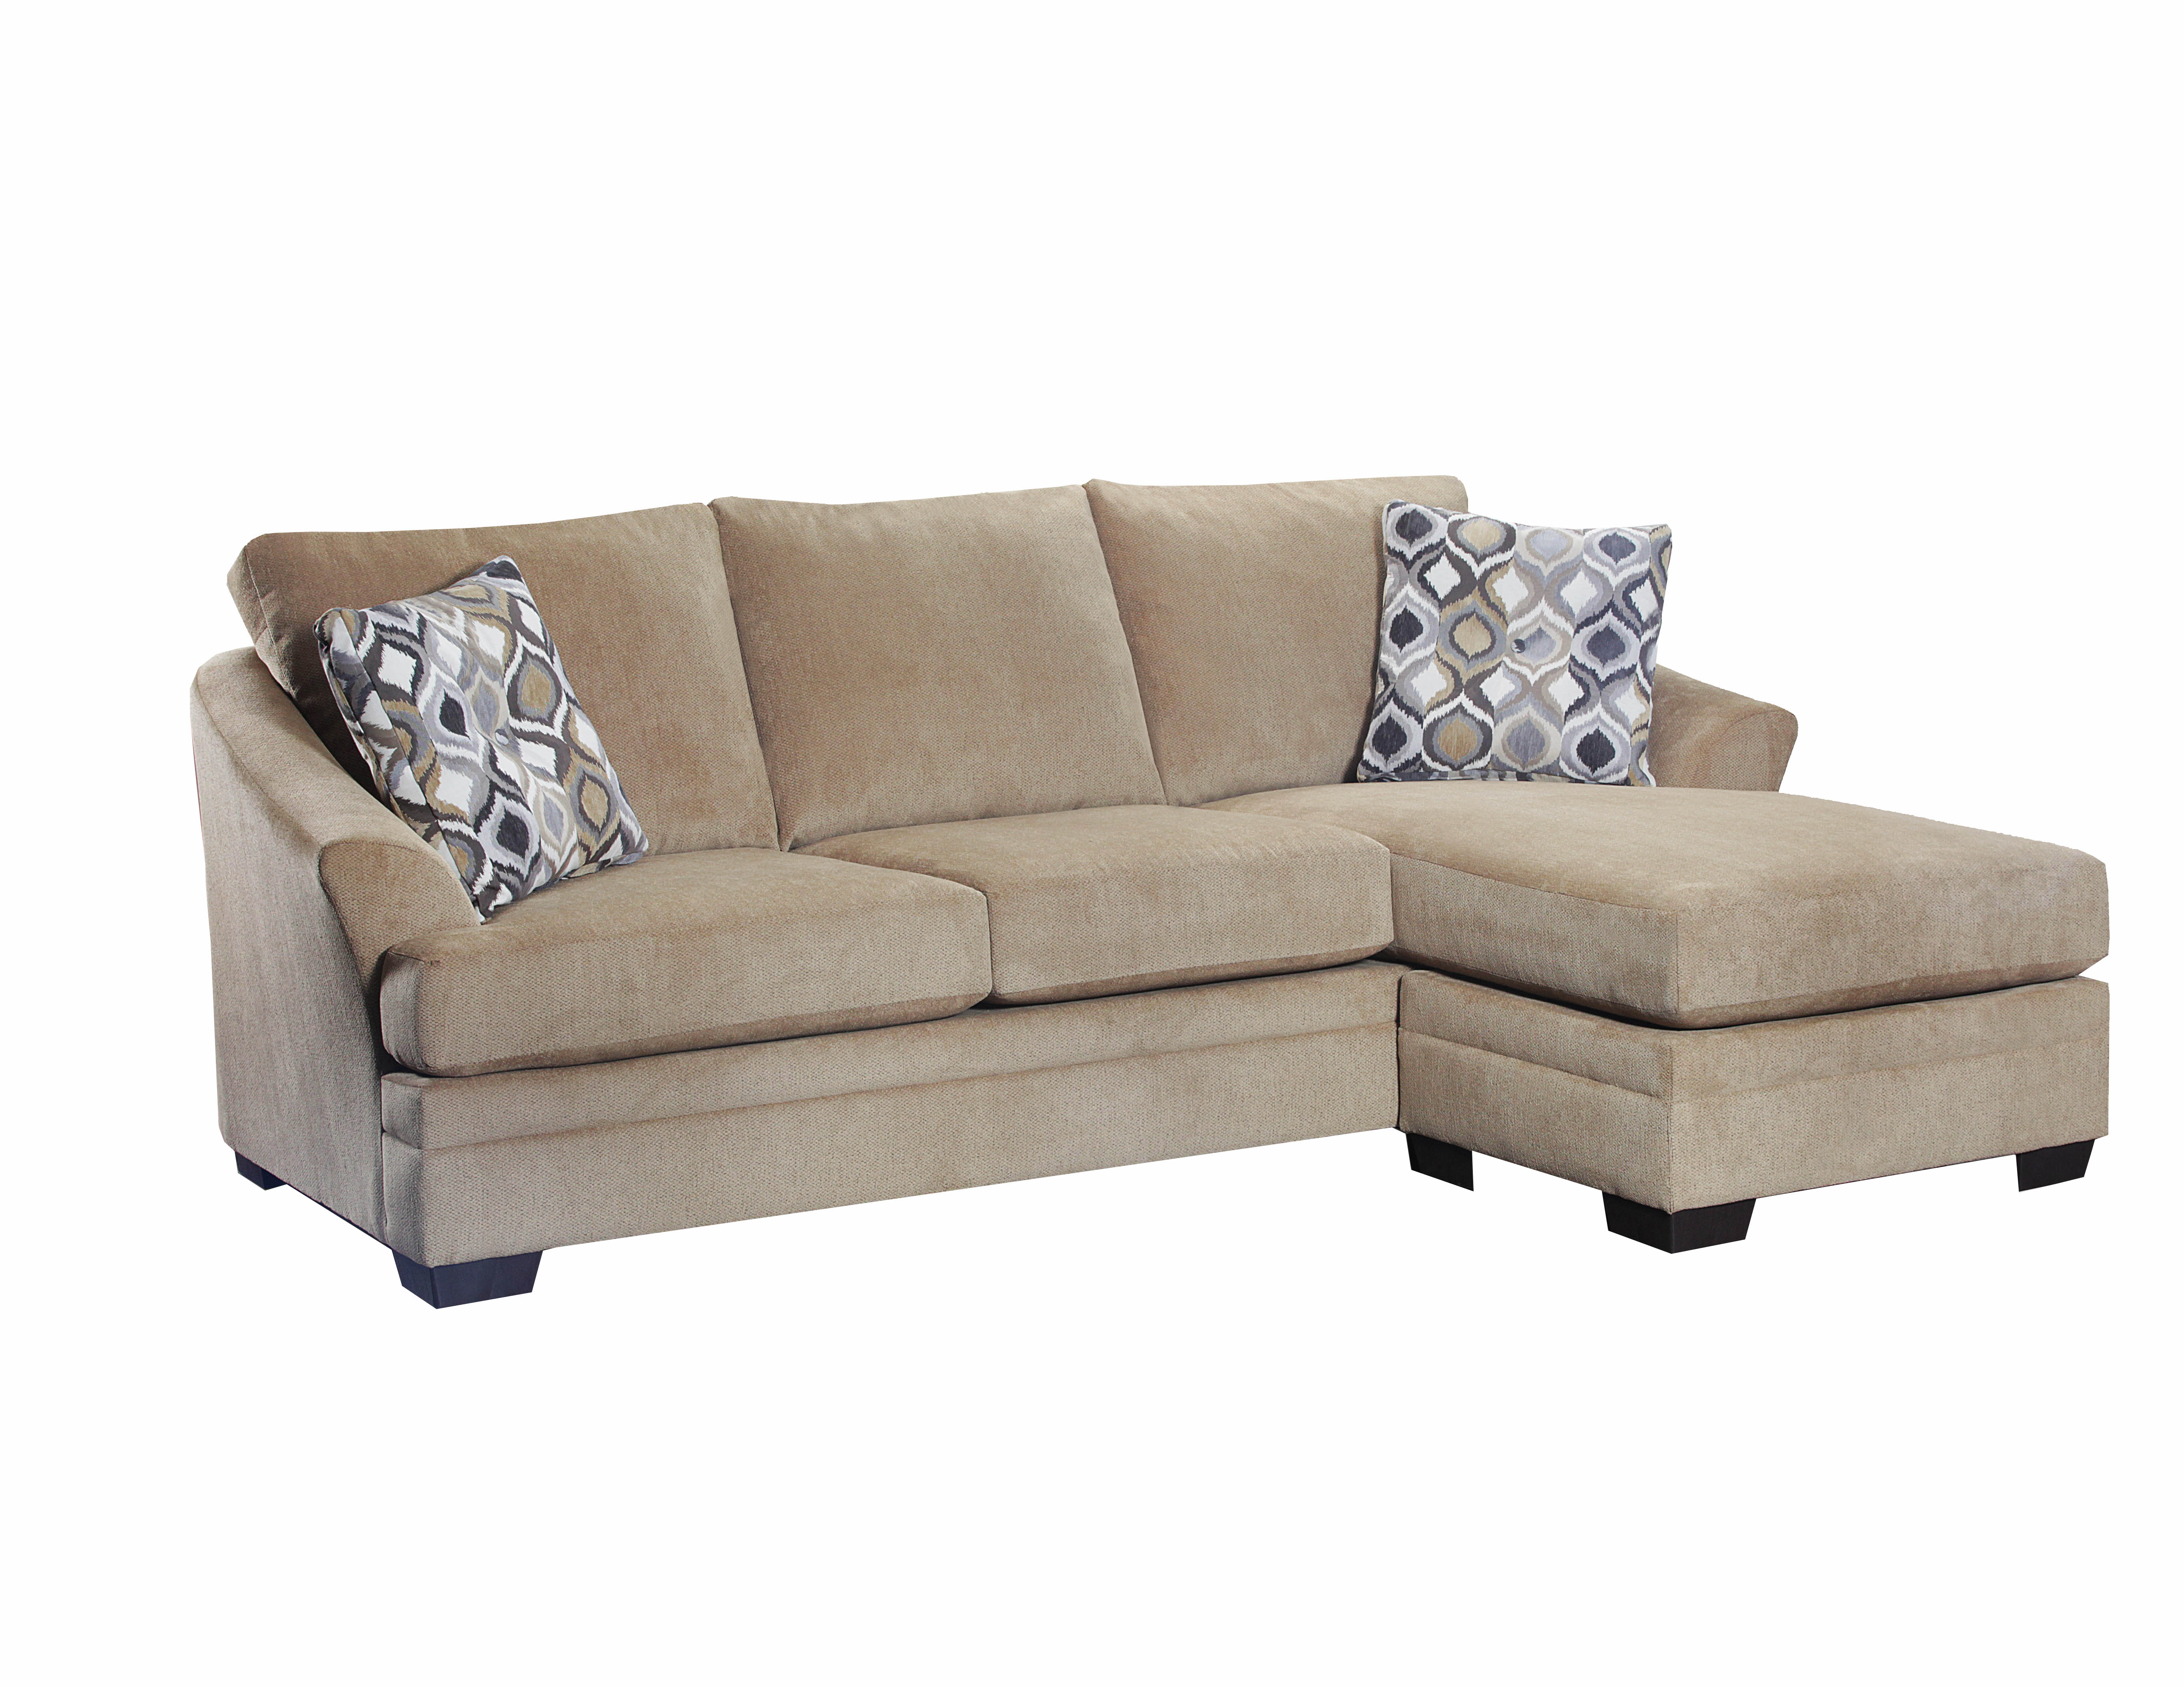 sears clearwater sofa sectional childrens canada simmons upholstery cicero laf tan home